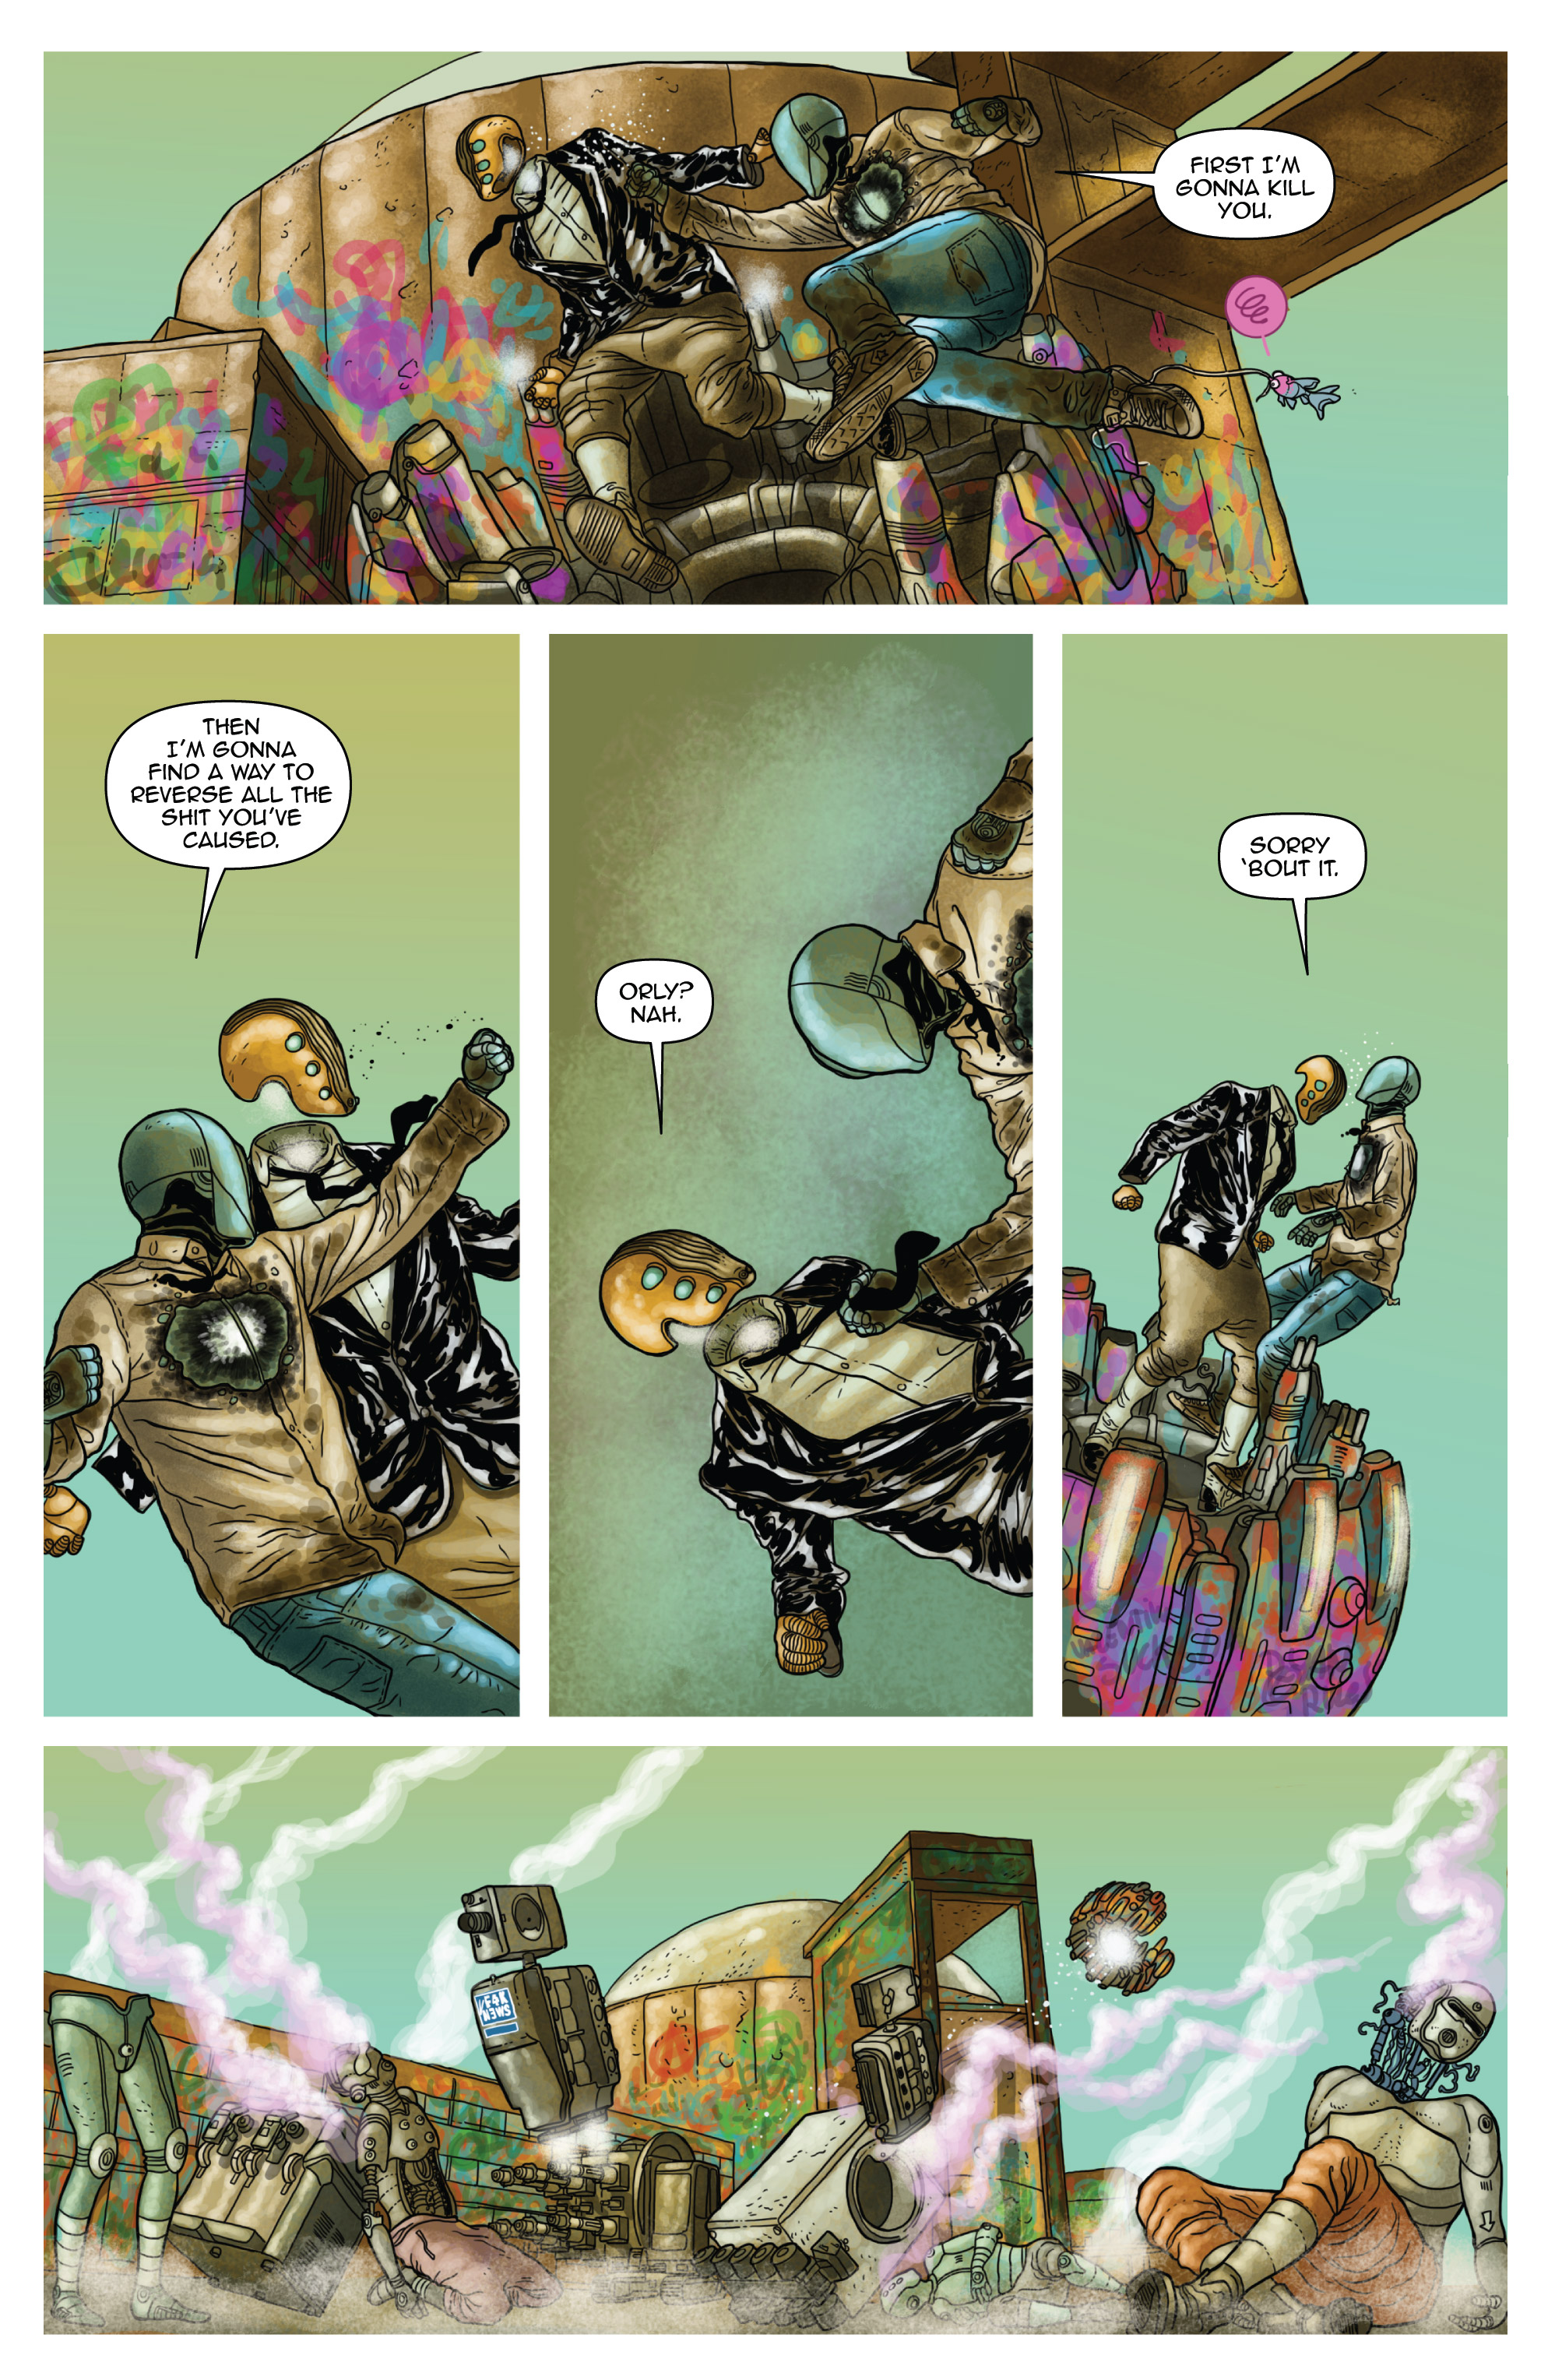 Read online D4VEocracy comic -  Issue #4 - 13